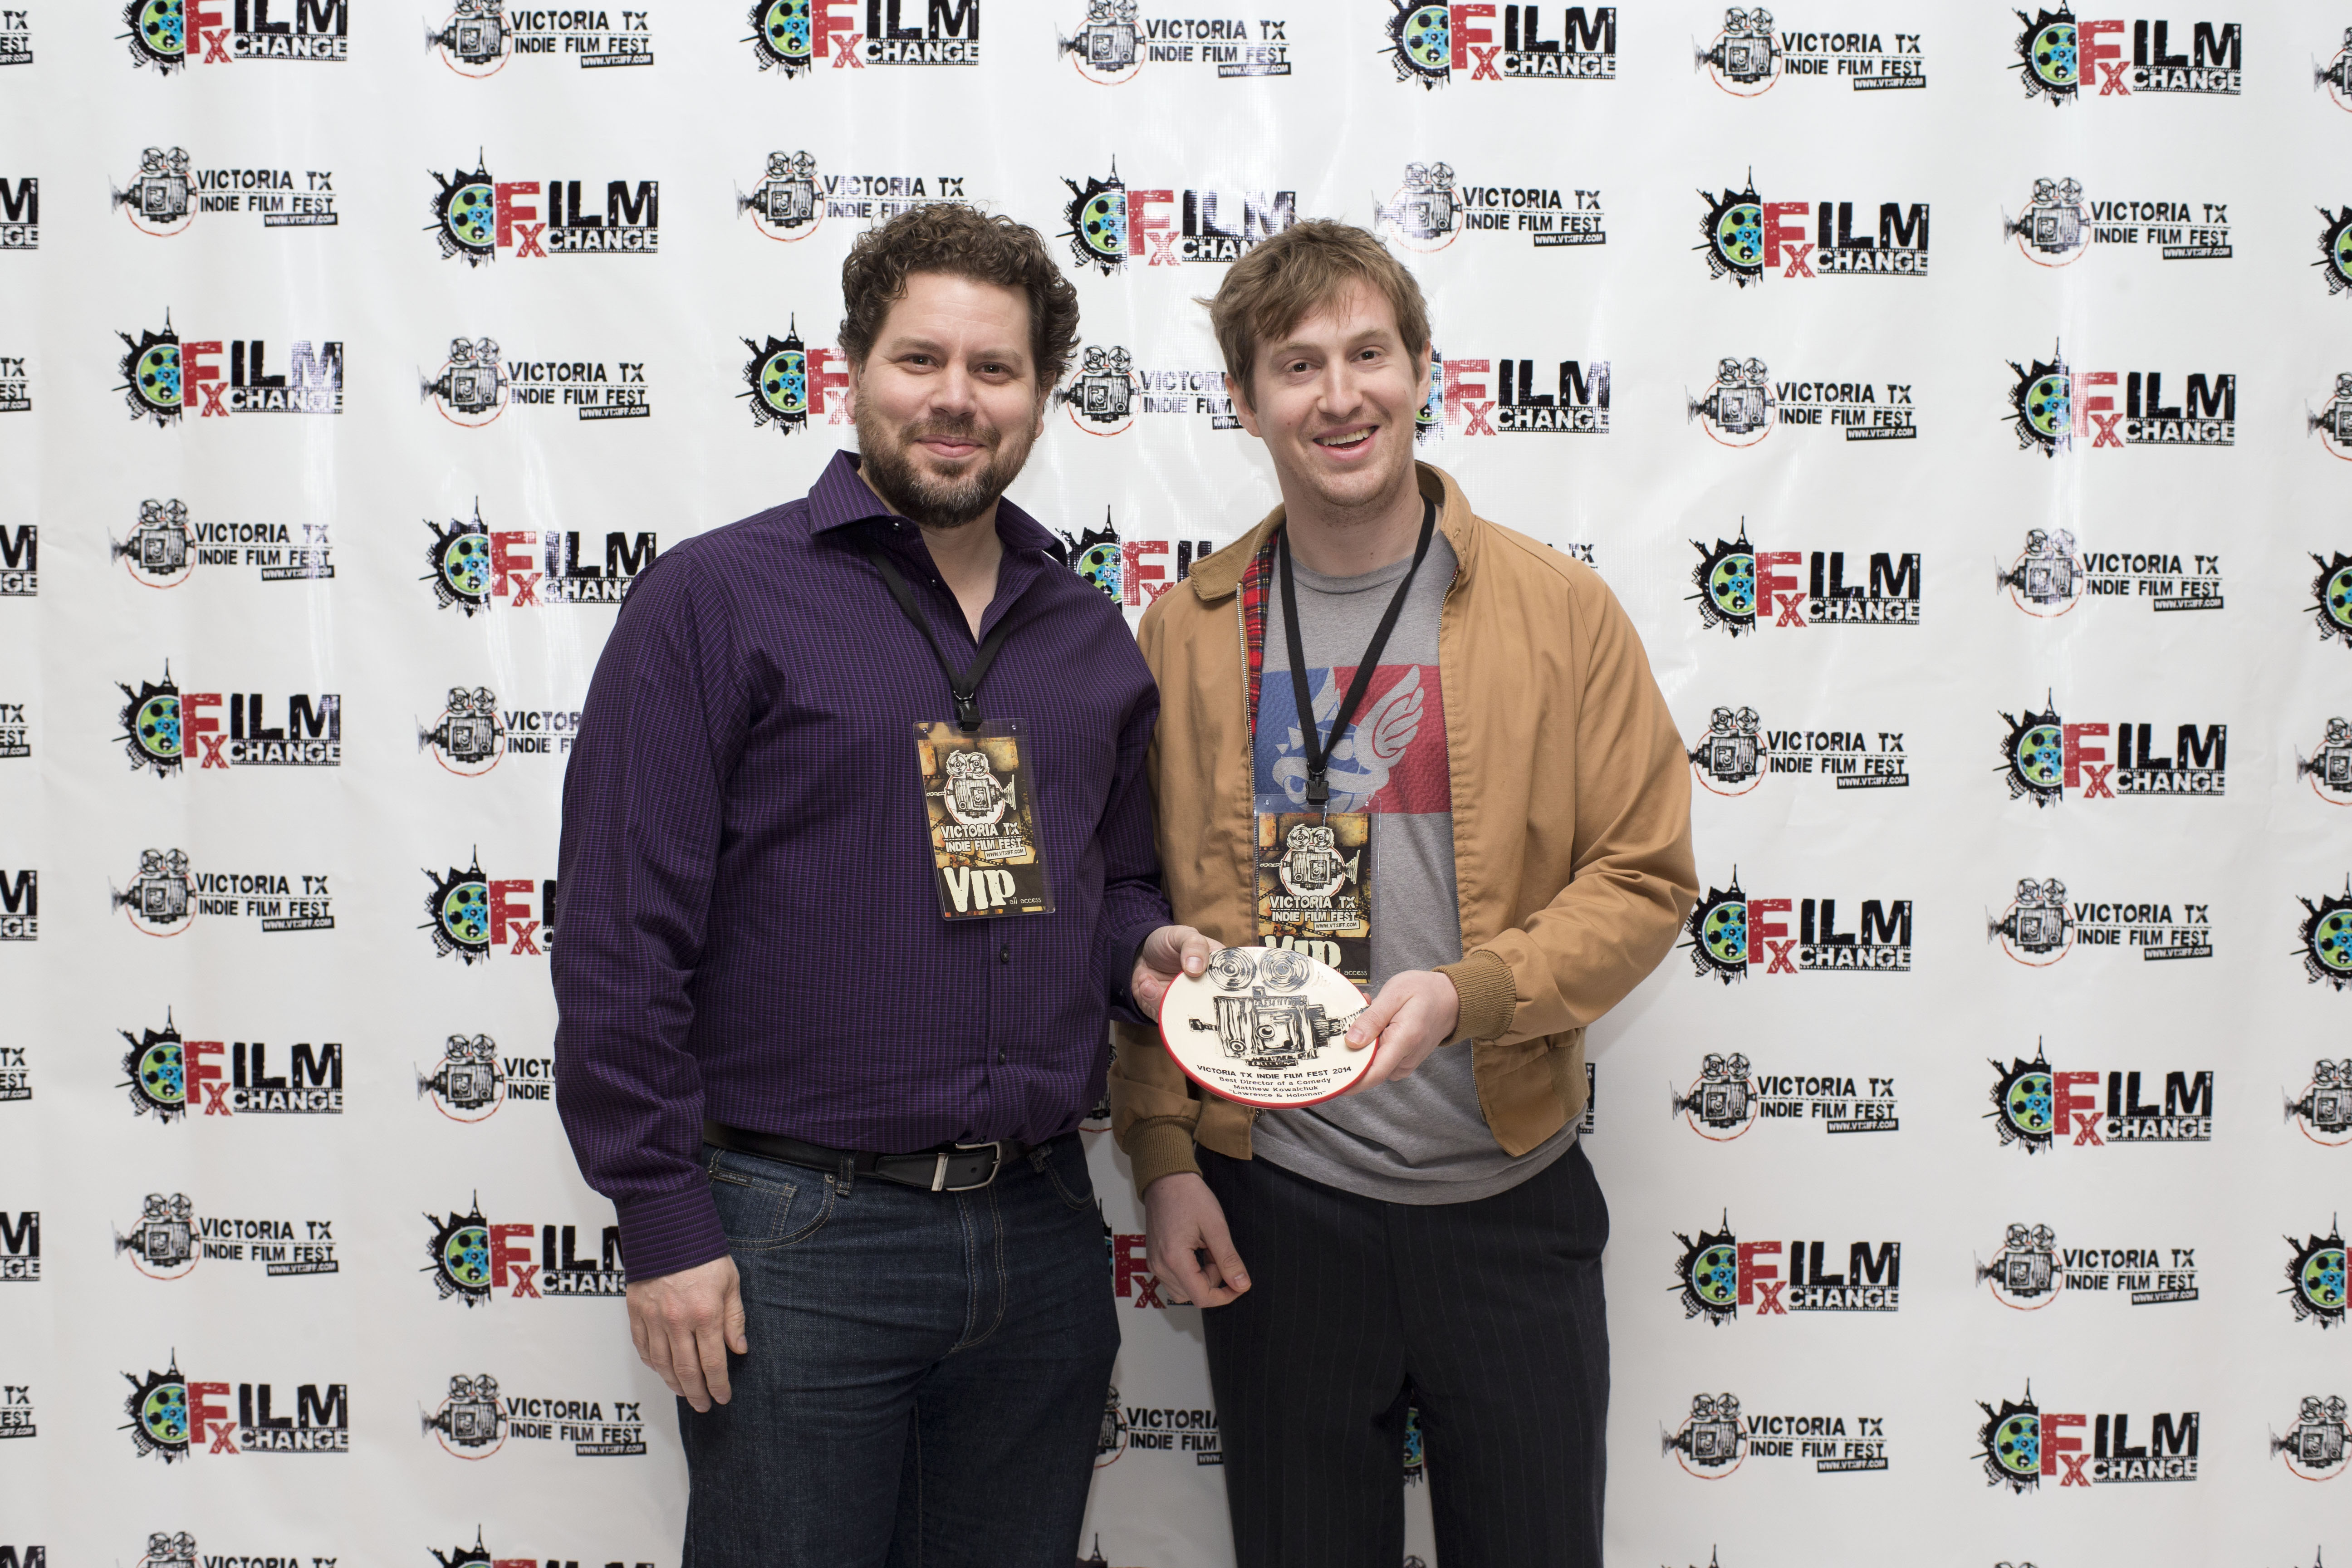 BEST DIRECTOR OF A COMEDY